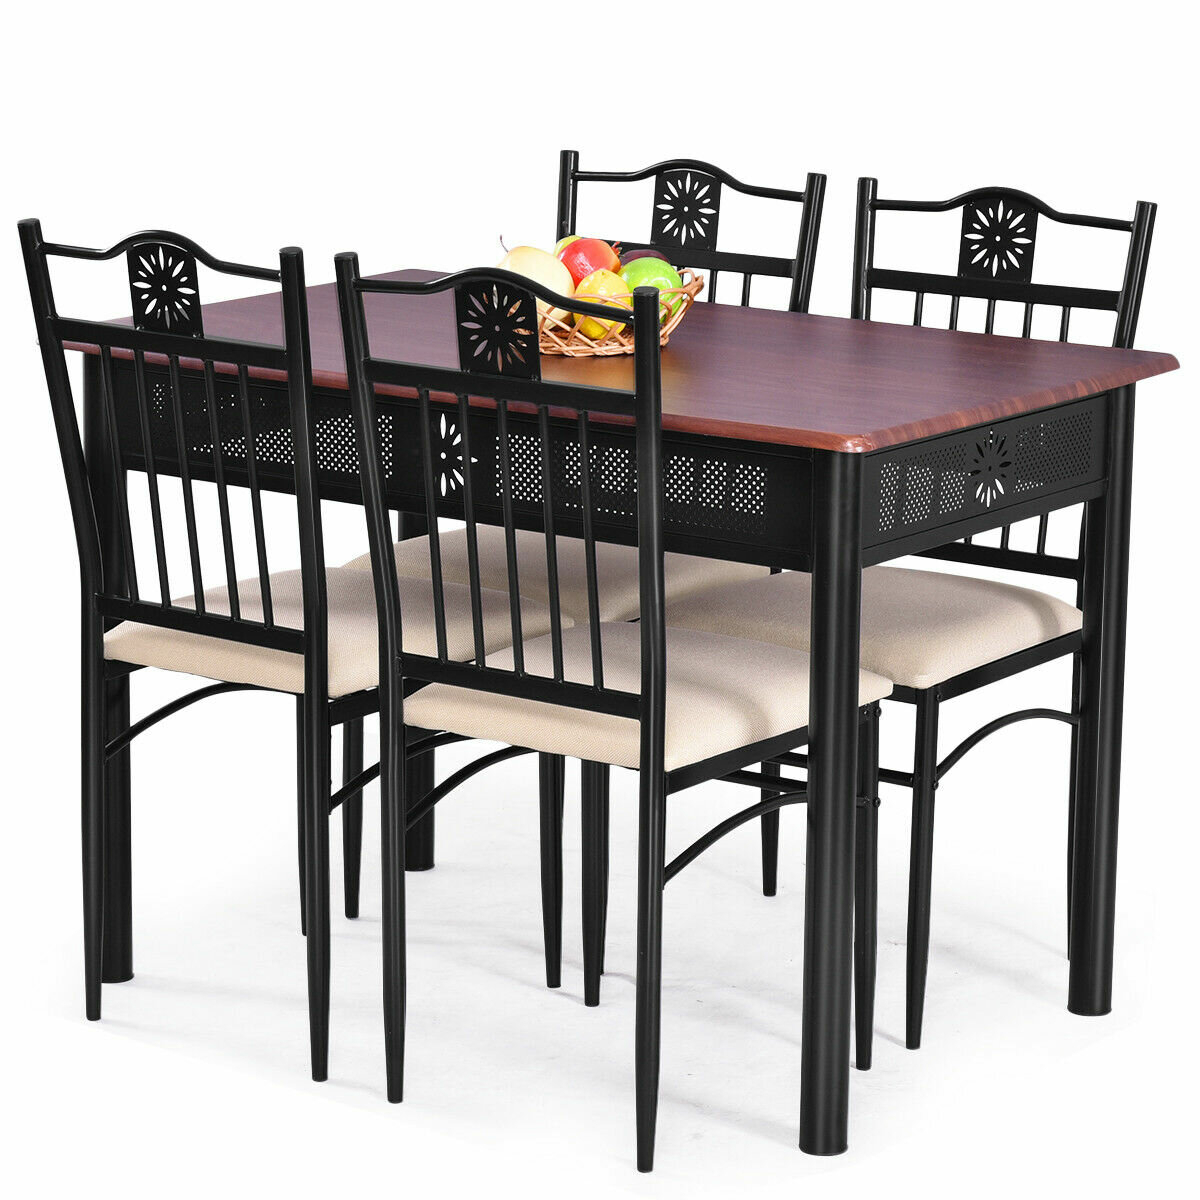 Wayfair Pertaining To 2018 Conover 5 Piece Dining Sets (#16 of 20)